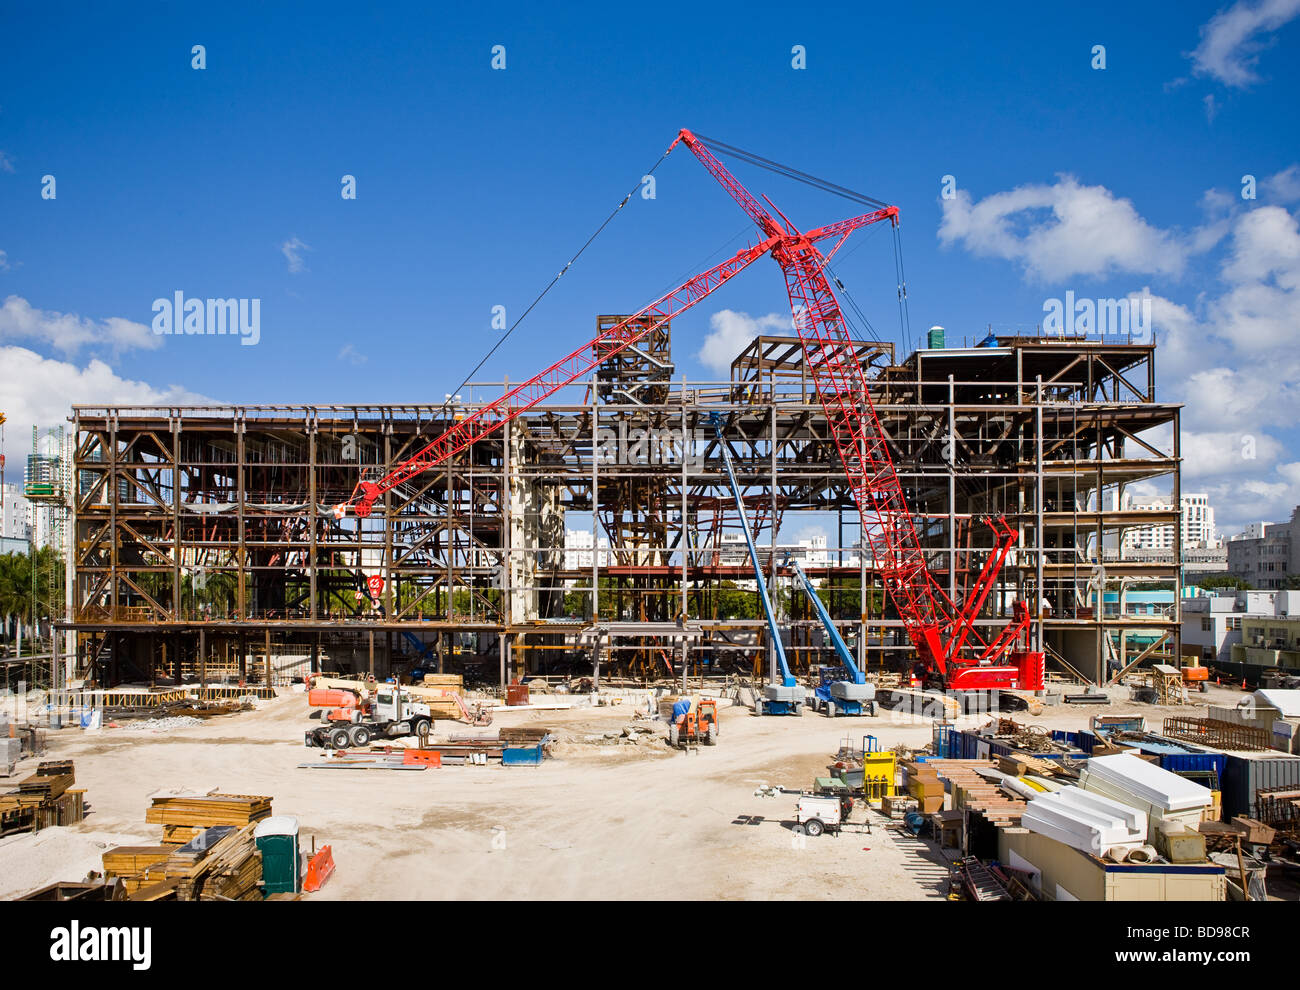 A construction site with blue sky and red crane. All logos, signs and other intellectual property have been digitally - Stock Image